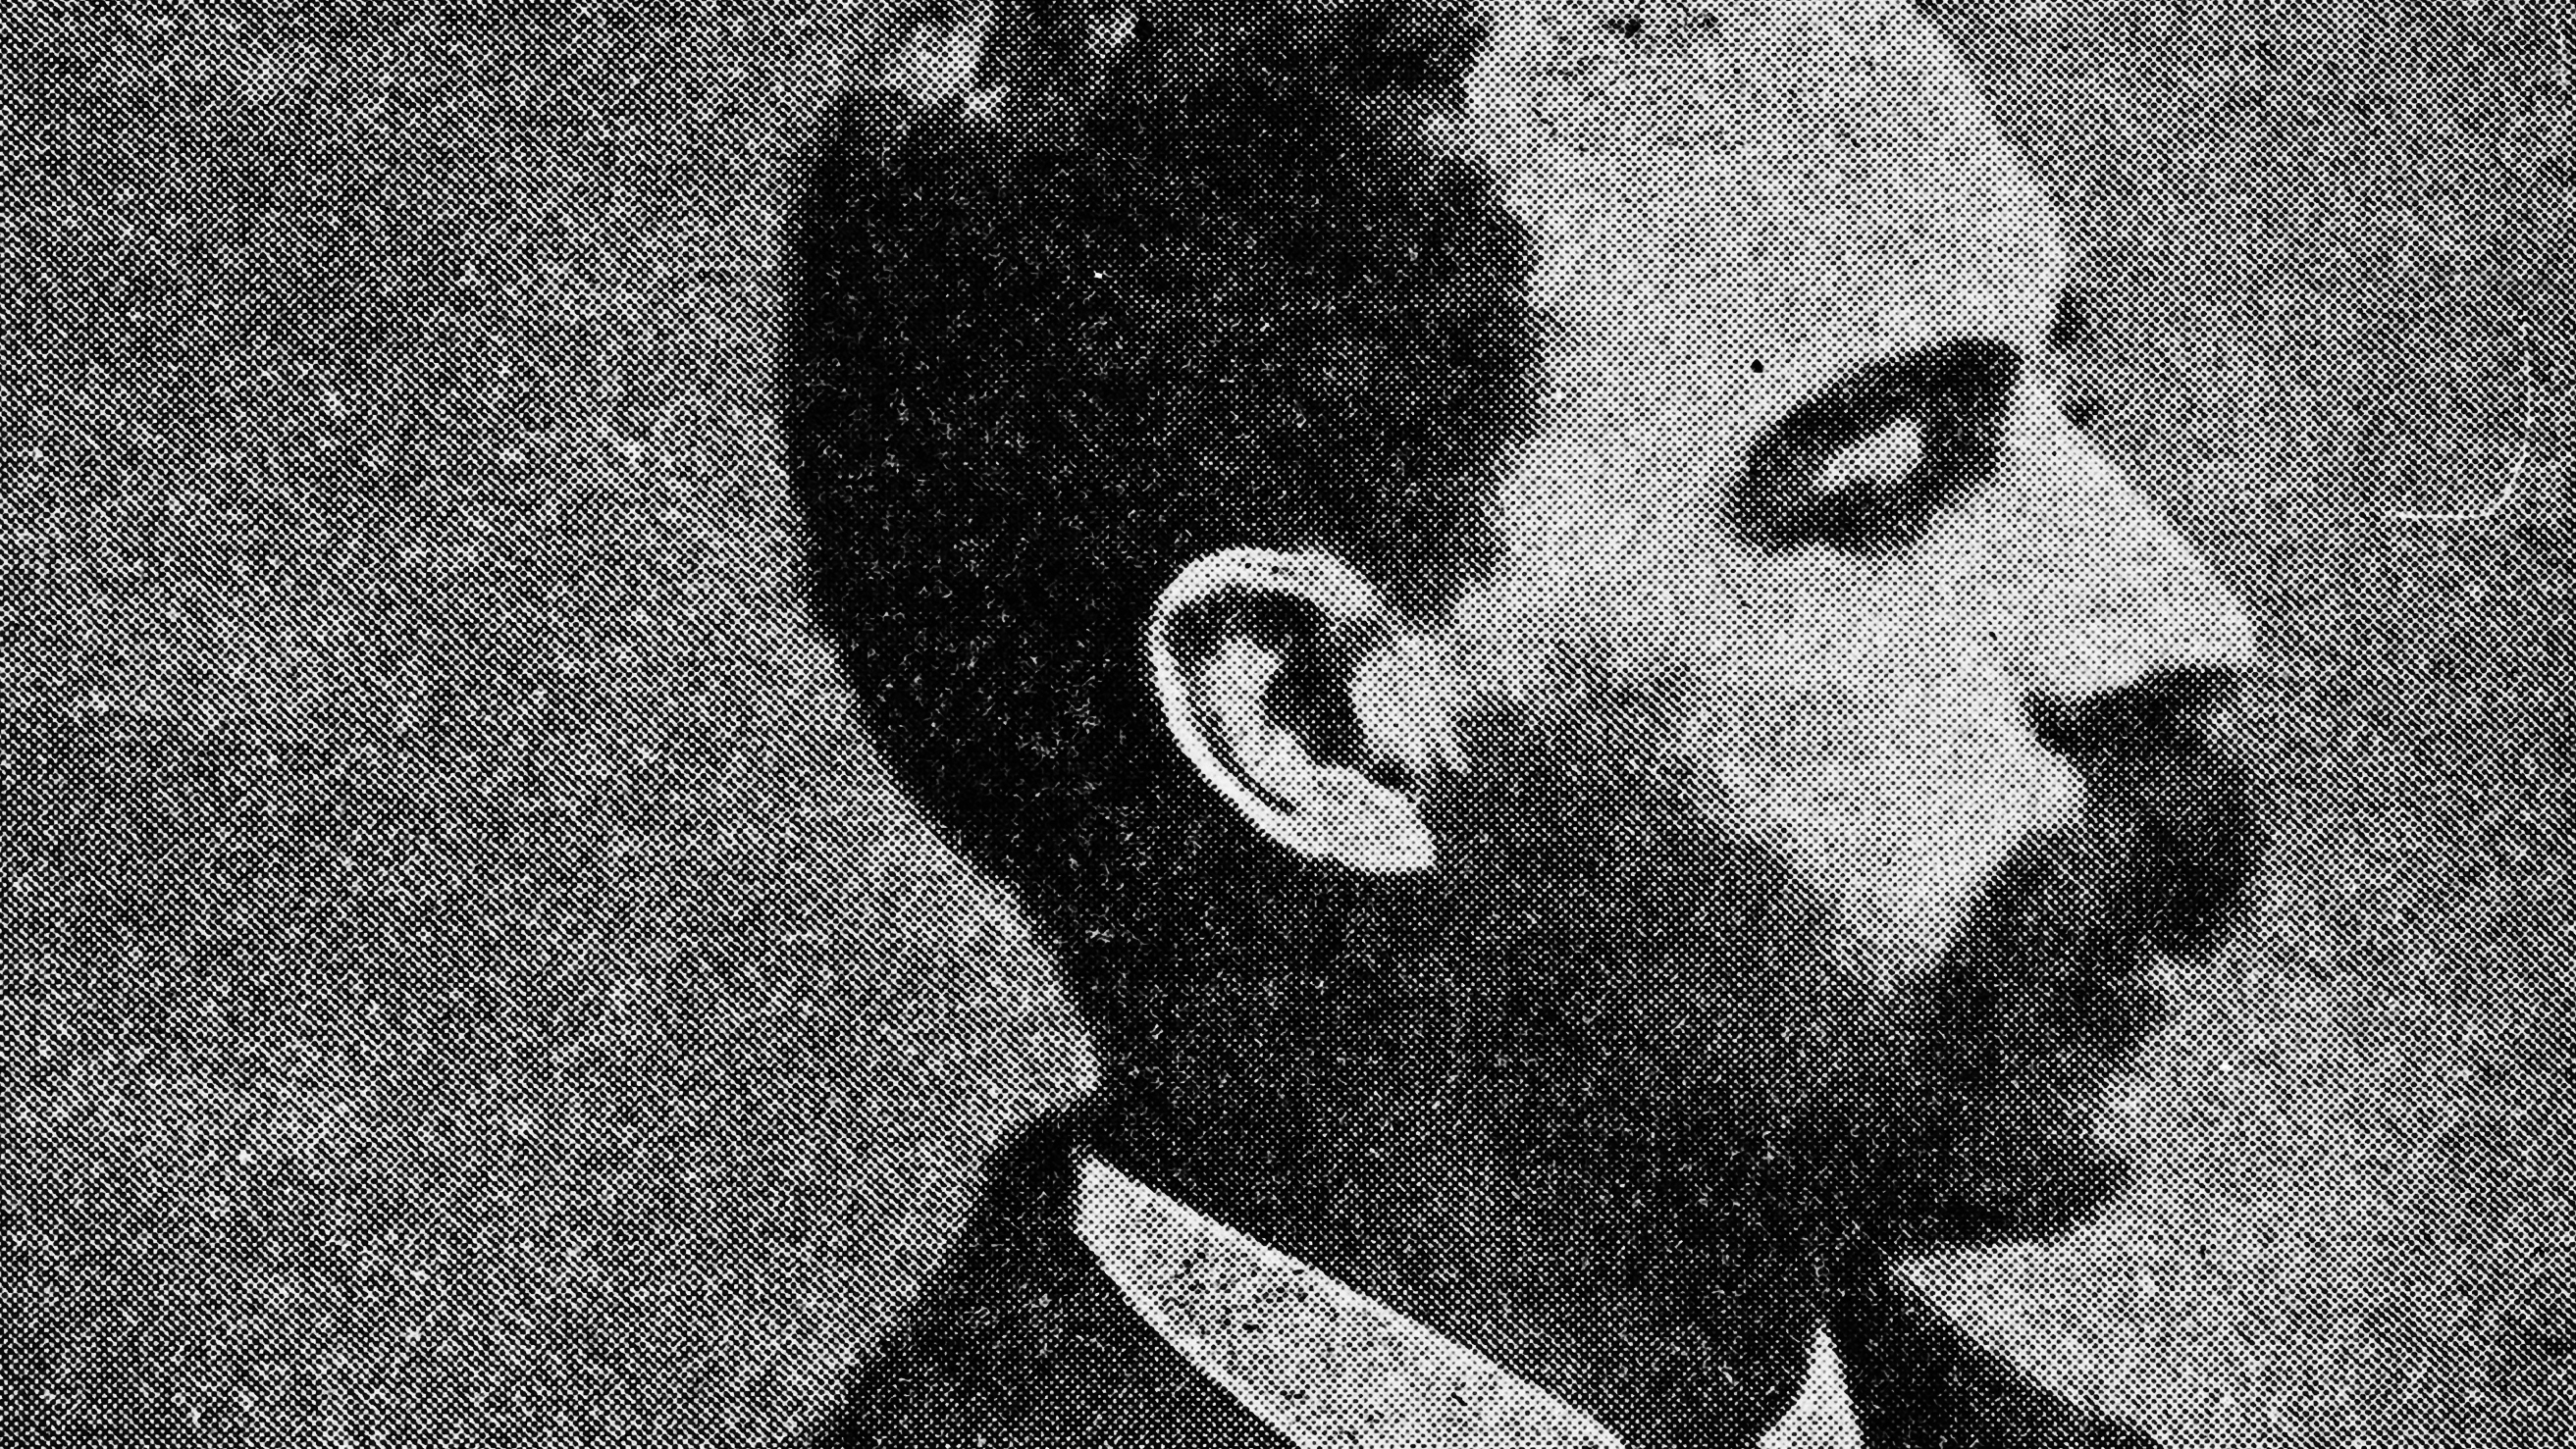 7 People Suspected of Being Jack the Ripper - History Lists